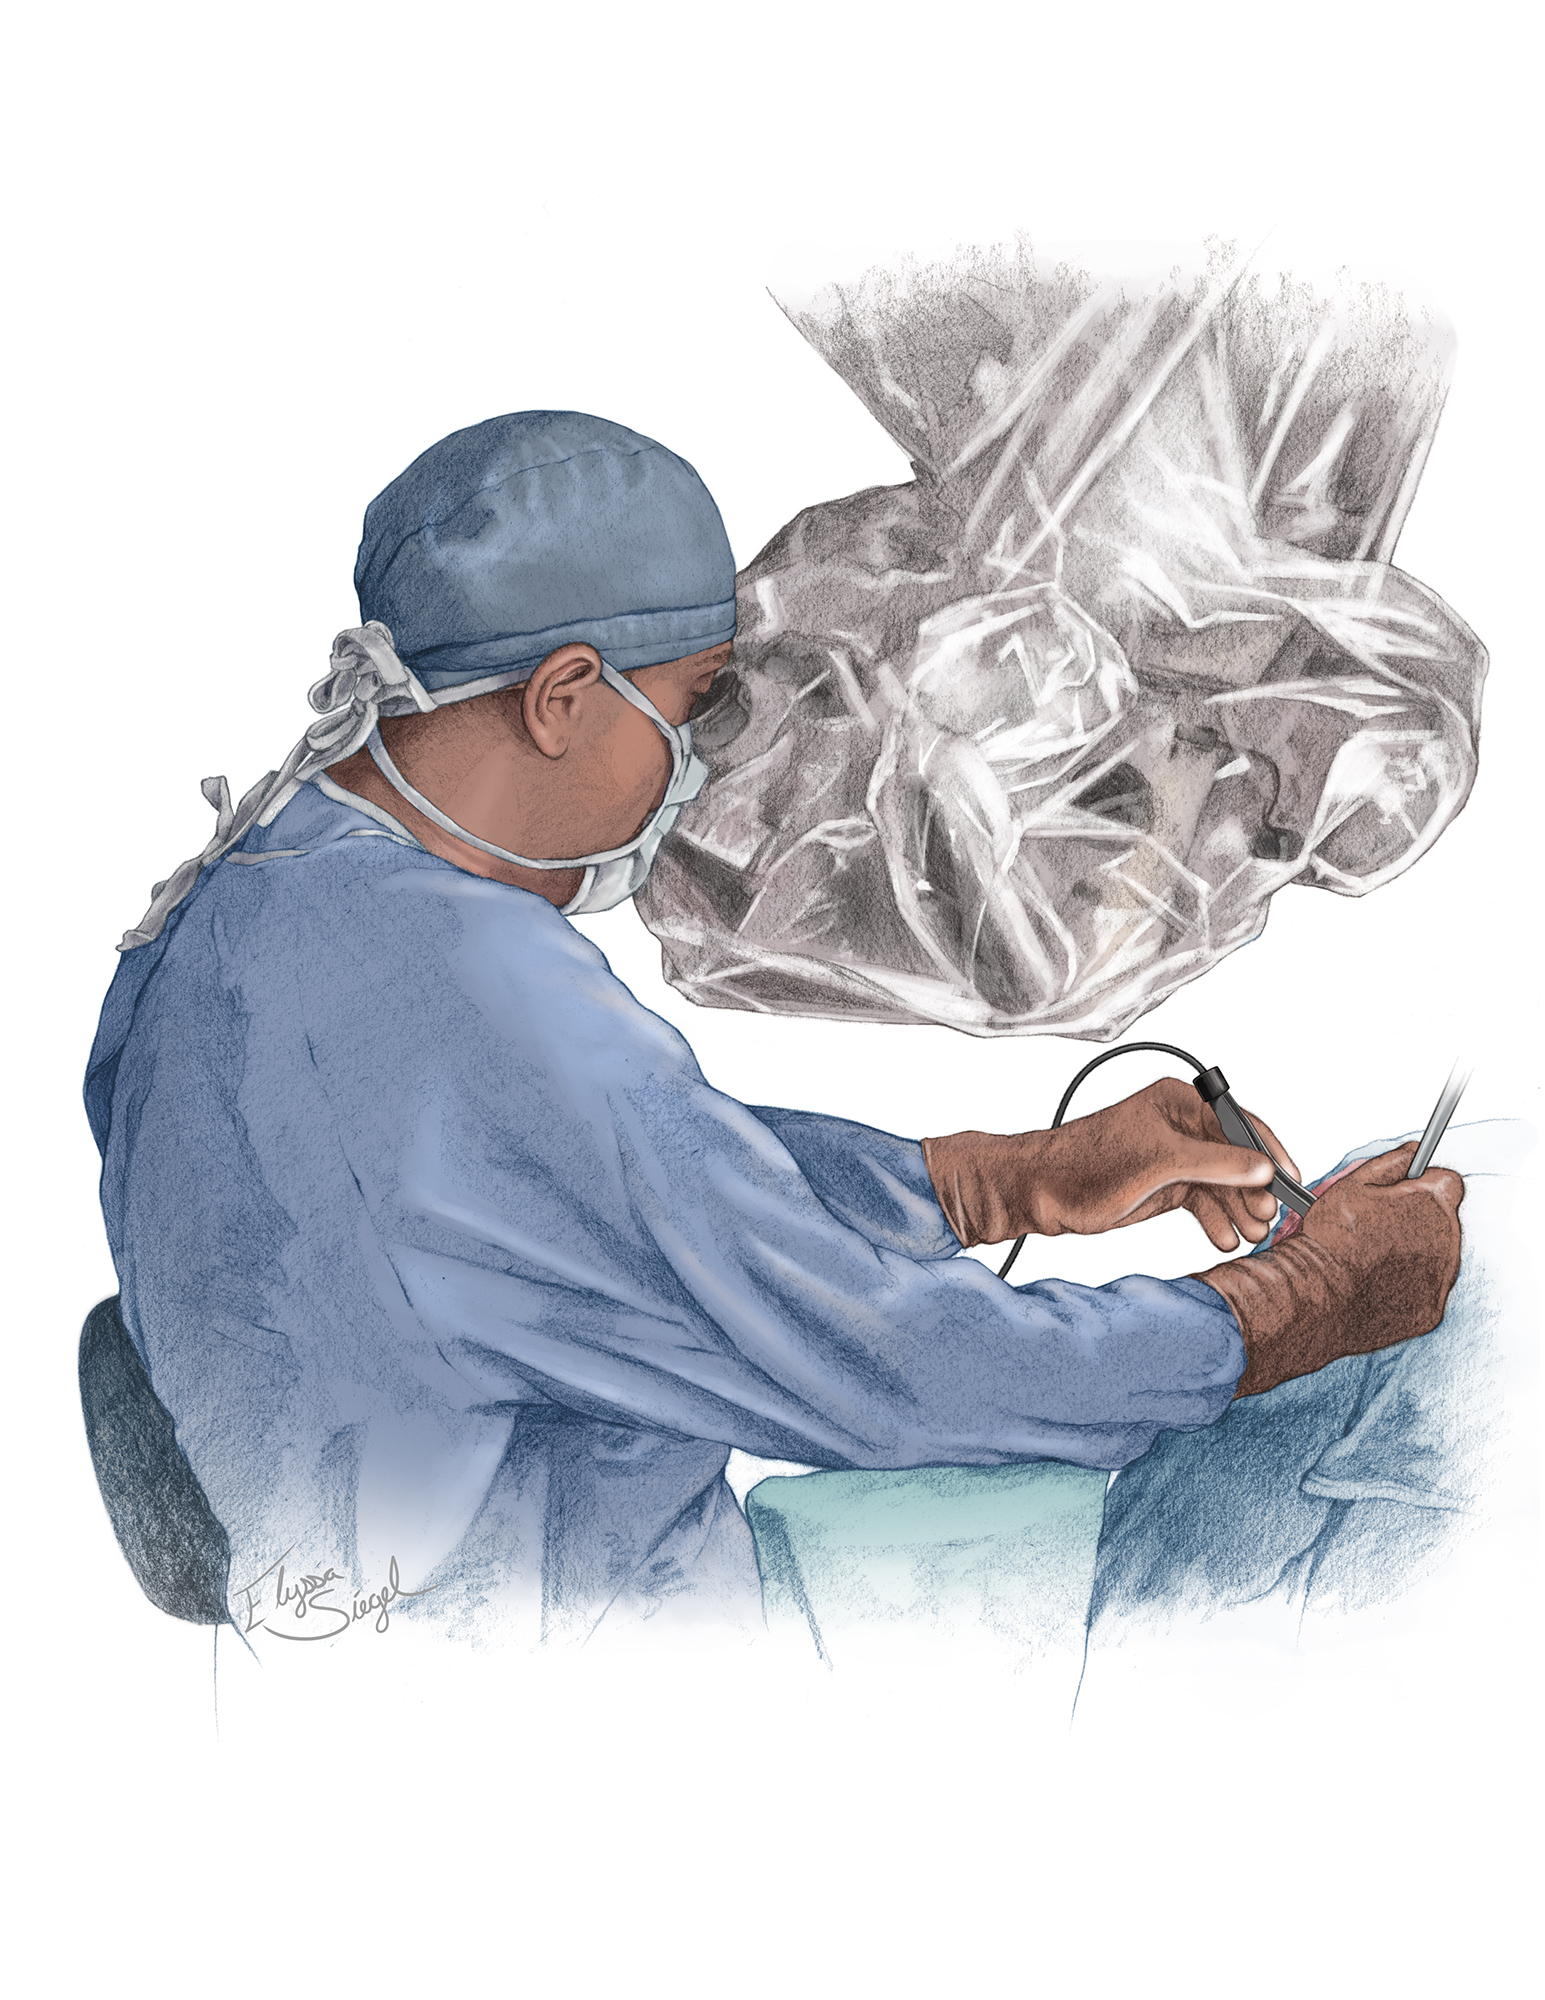 Figure 3: The proper operating position: one of the most overlooked considerations in patient safety is the surgeon's comfort. Standing may lead to arm and hand fatigue, whereas a sitting position allows the use of armrests and promotes relaxed and steady hands. Comfortable positions also improve surgical technique by eliminating nondeliberate and unintentional dissection maneuvers. The wrists should be able to hang slightly from the armrests.